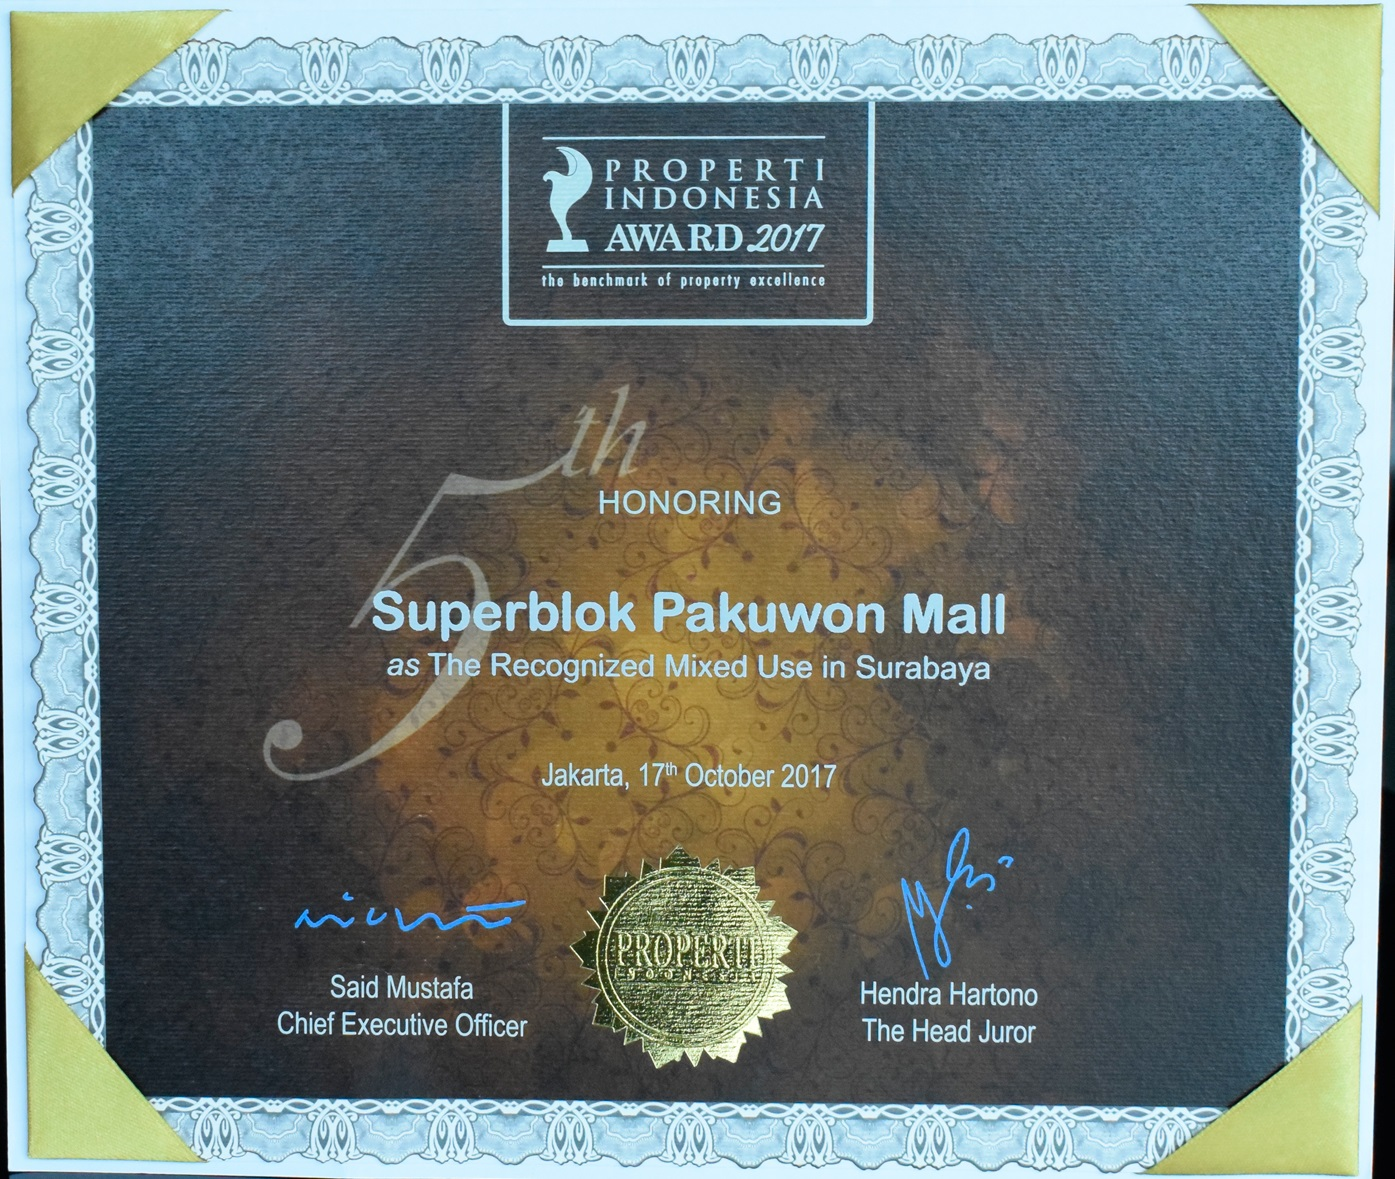 /public/files/image-companny/award-slider/SuperblokPakuwonMallasTheRecognizedMixedUsed-IndonesiaPropertyAwards2017.jpg